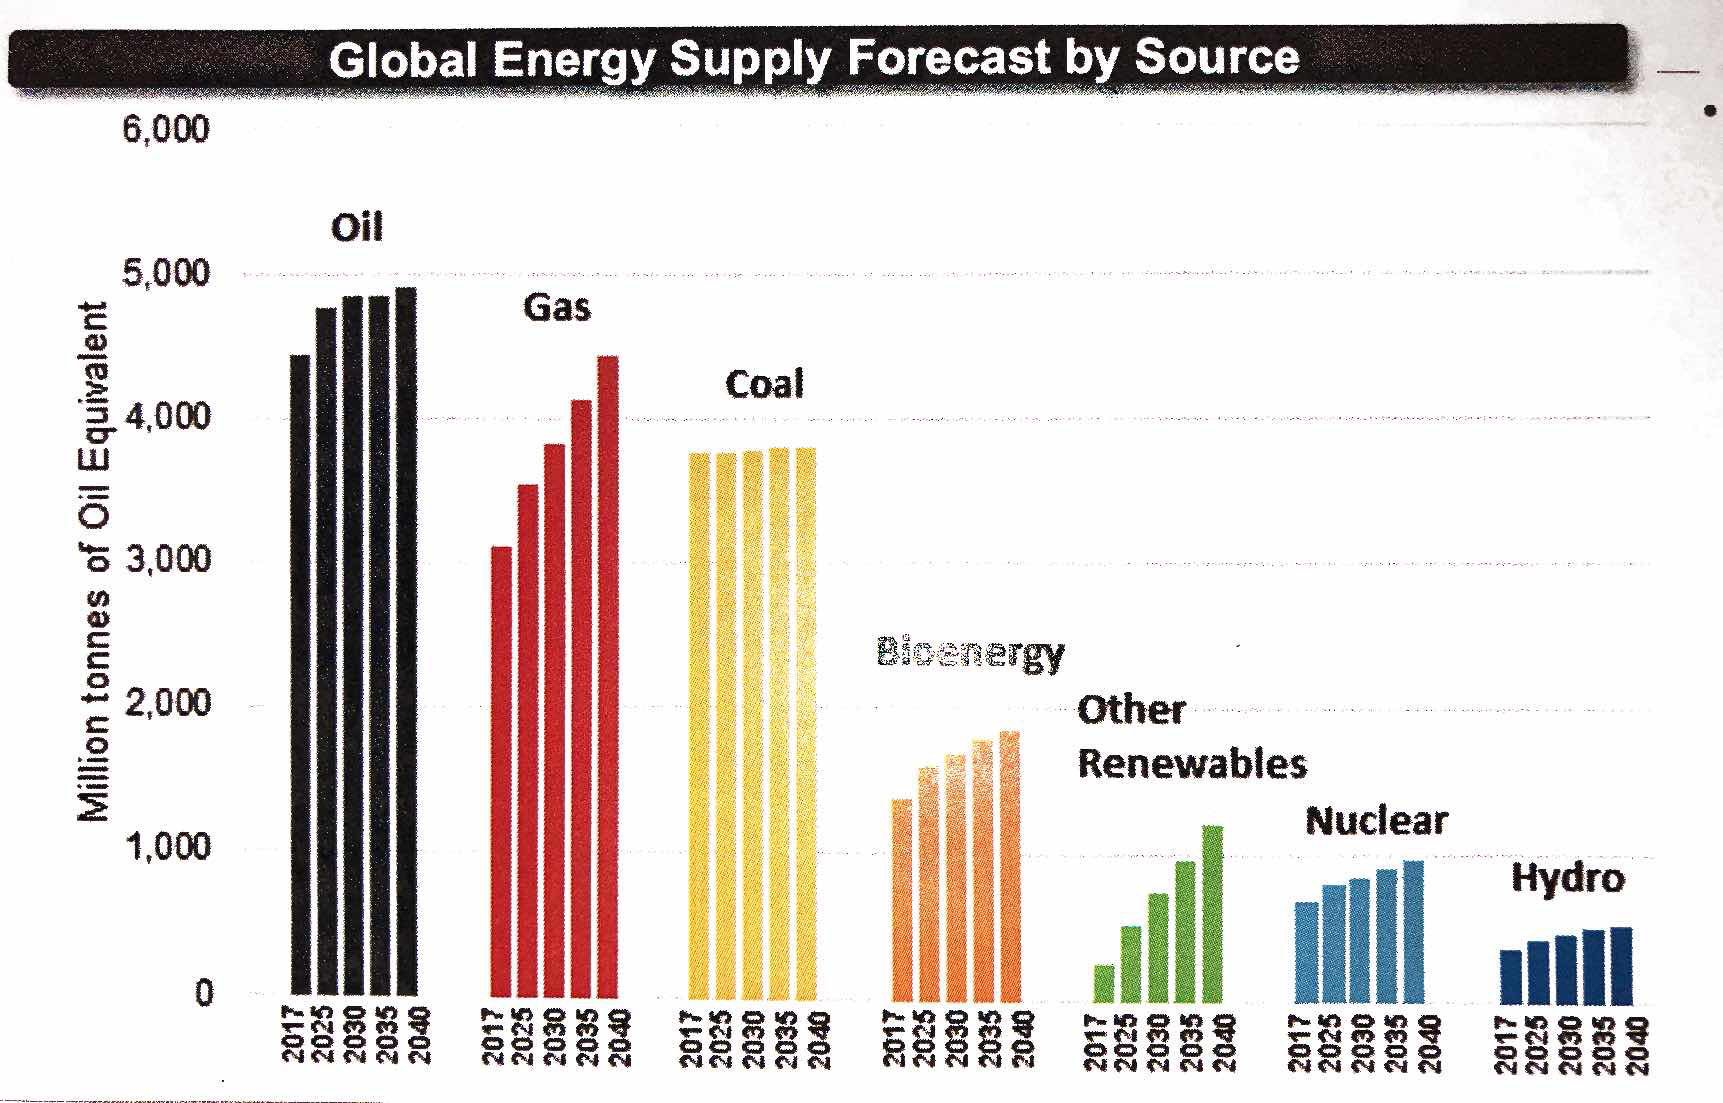 Global Energy Supply Forecasts 2040 - IEA